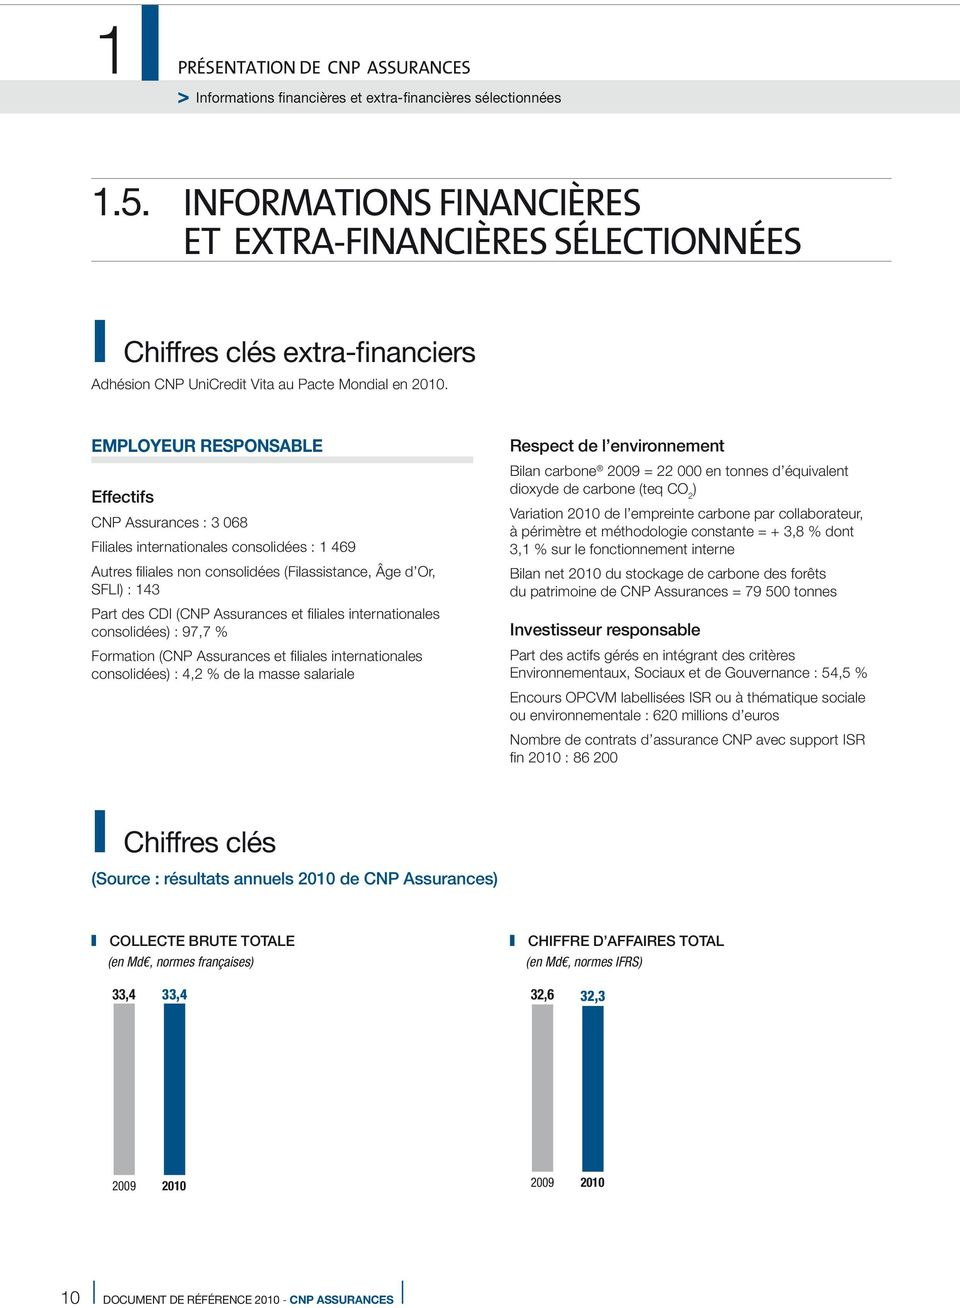 EMPLOYEUR RESPONSABLE Effectifs CNP Assurances : 3 068 Filiales internationales consolidées : 1 469 Autres filiales non consolidées (Filassistance, Âge d Or, SFLI) : 143 Part des CDI (CNP Assurances